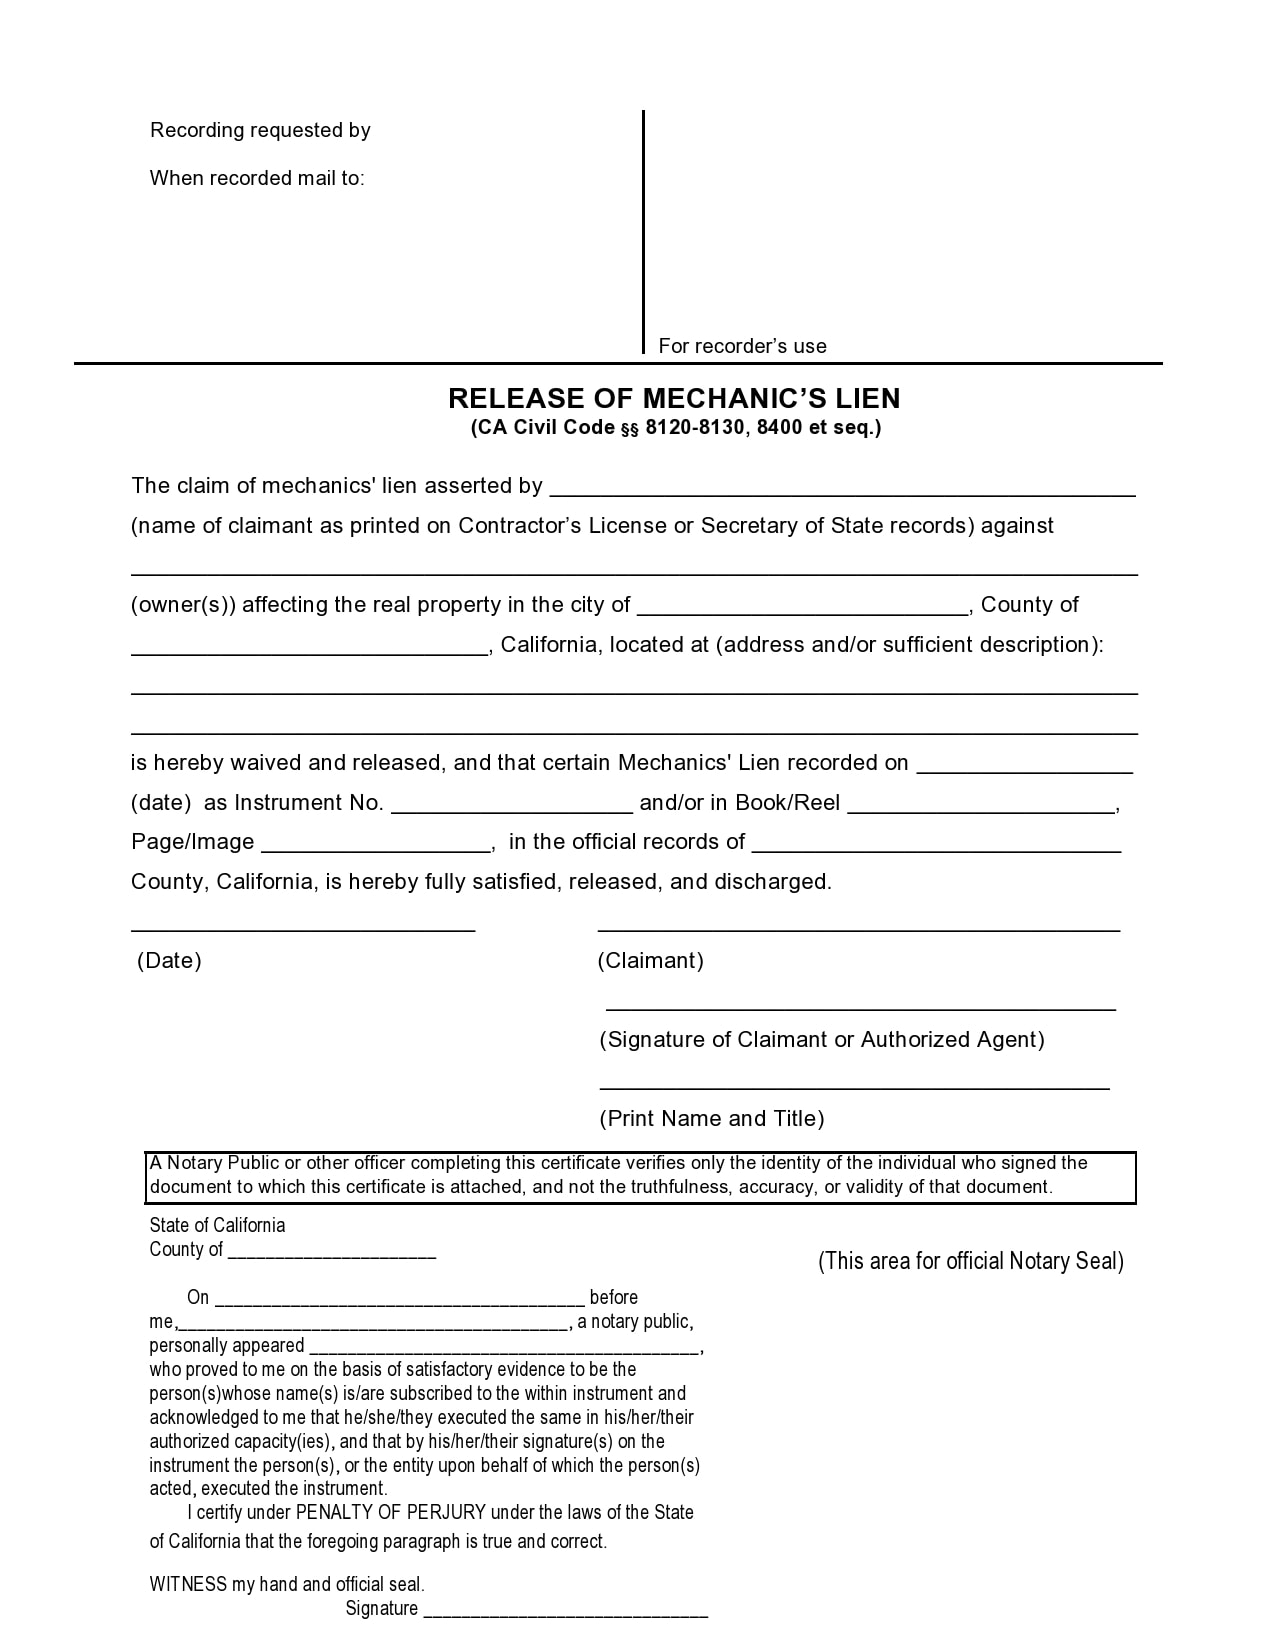 mechanics lien form 25